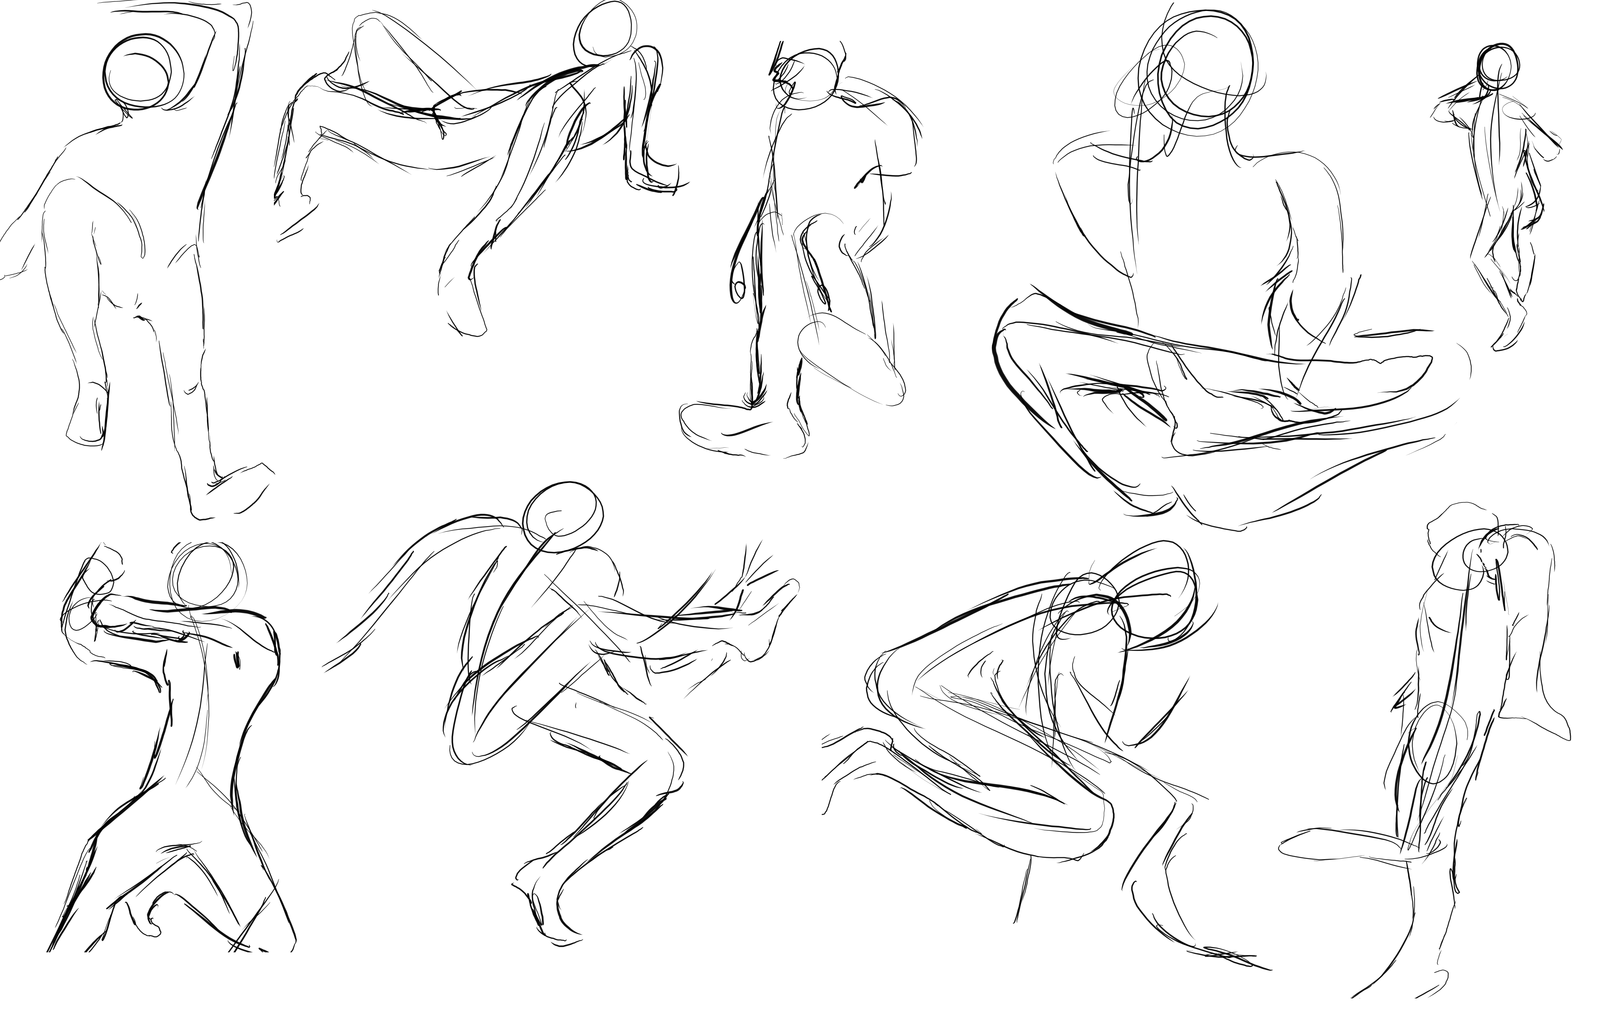 1600x1016 Gesture Drawings 3 28 12 By Keartricity